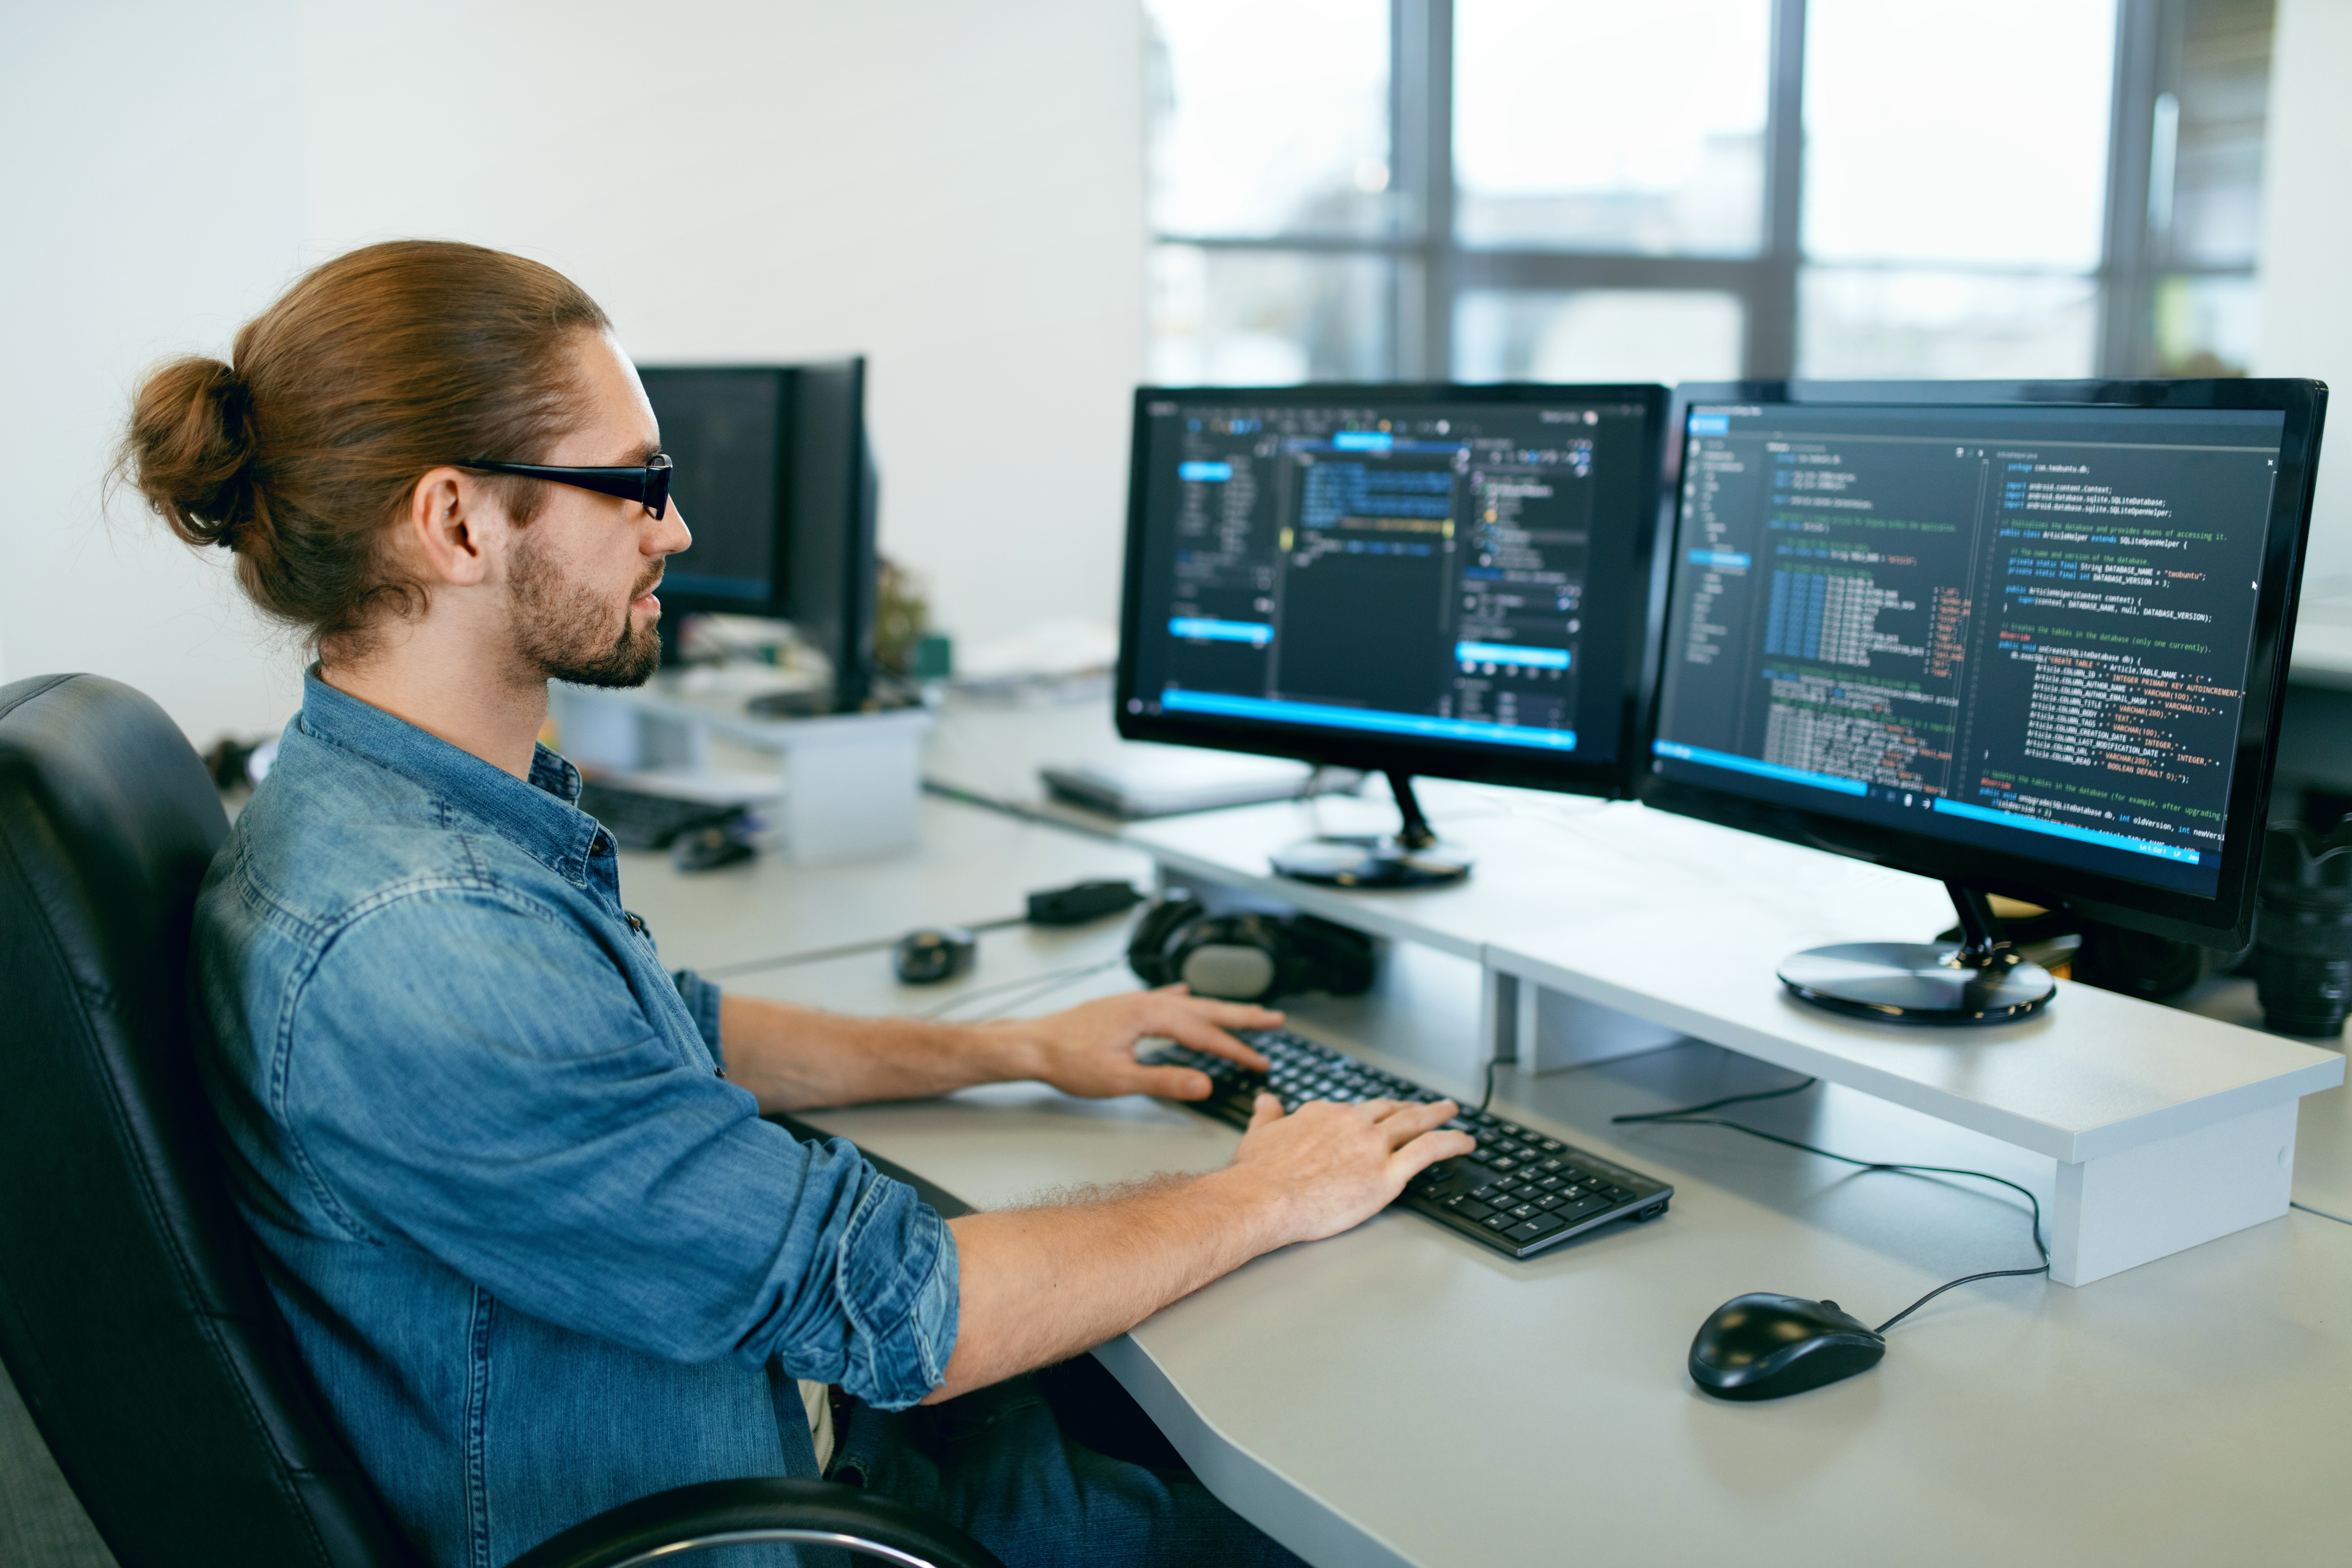 IT guy working on monitoring systems